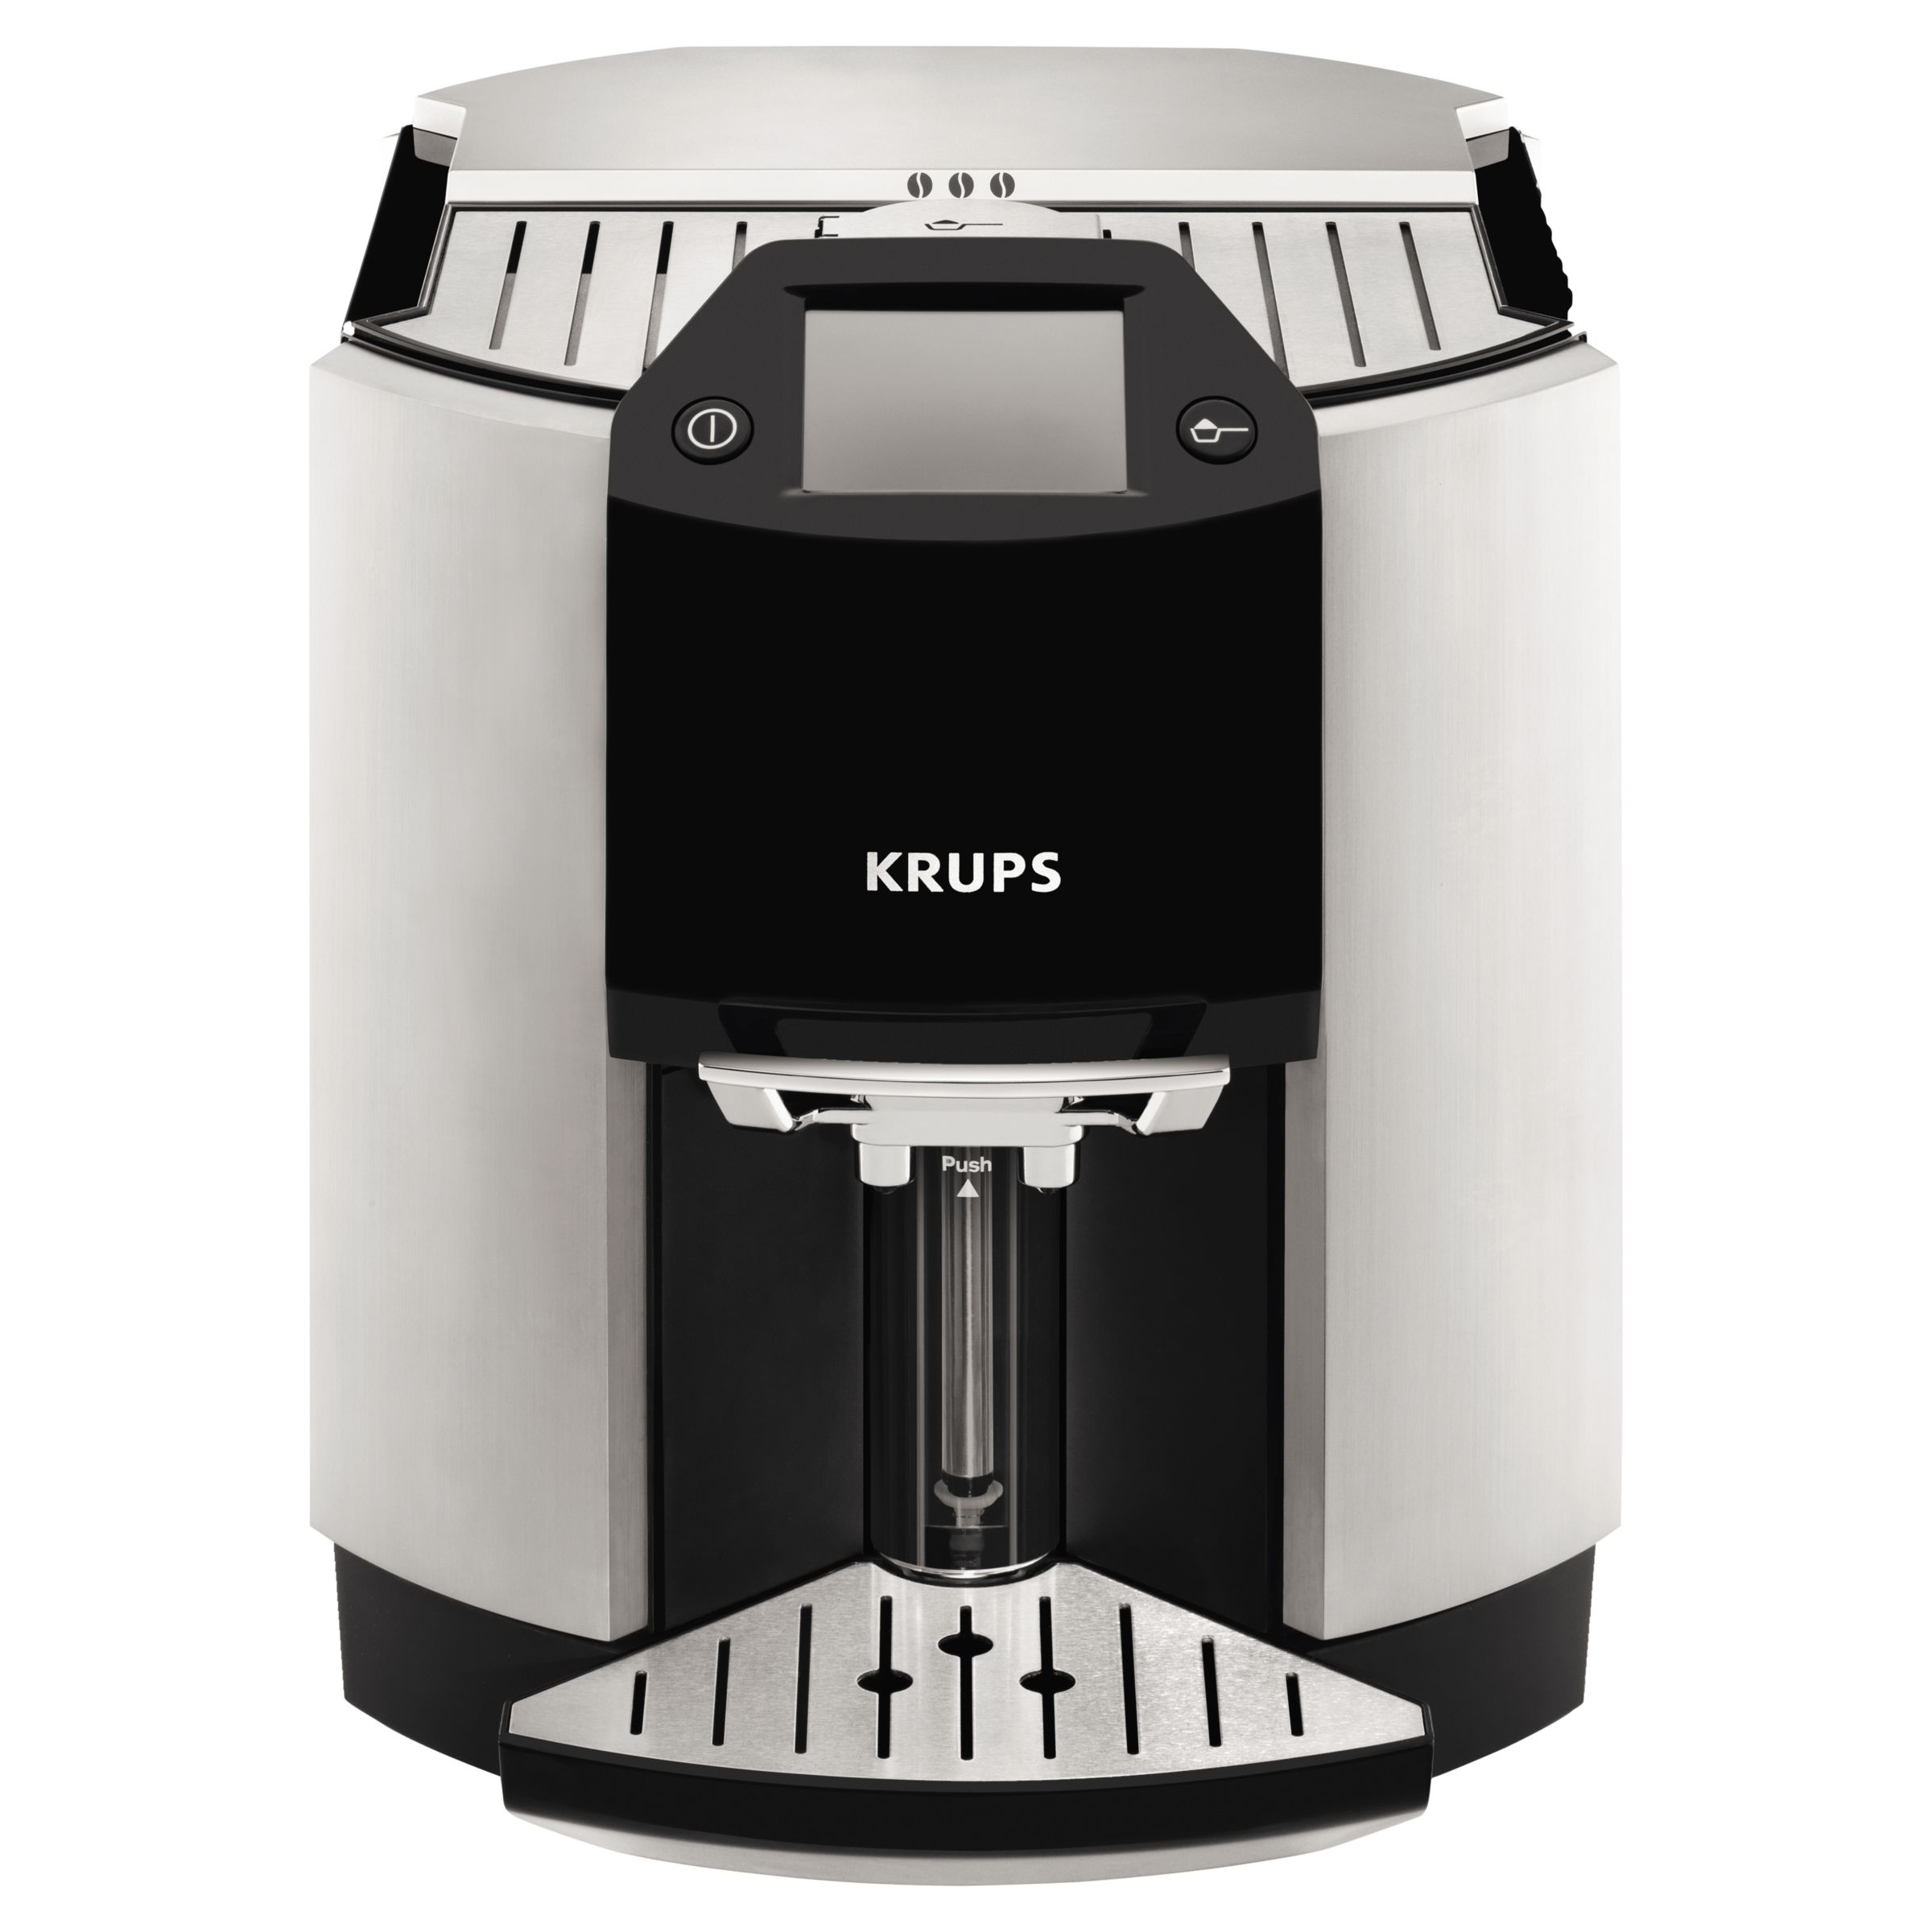 John Lewis Hob Coffee Maker : Buy KRUPS EA9010 Espresseria Bean-to-Cup Coffee Machine, Silver John Lewis